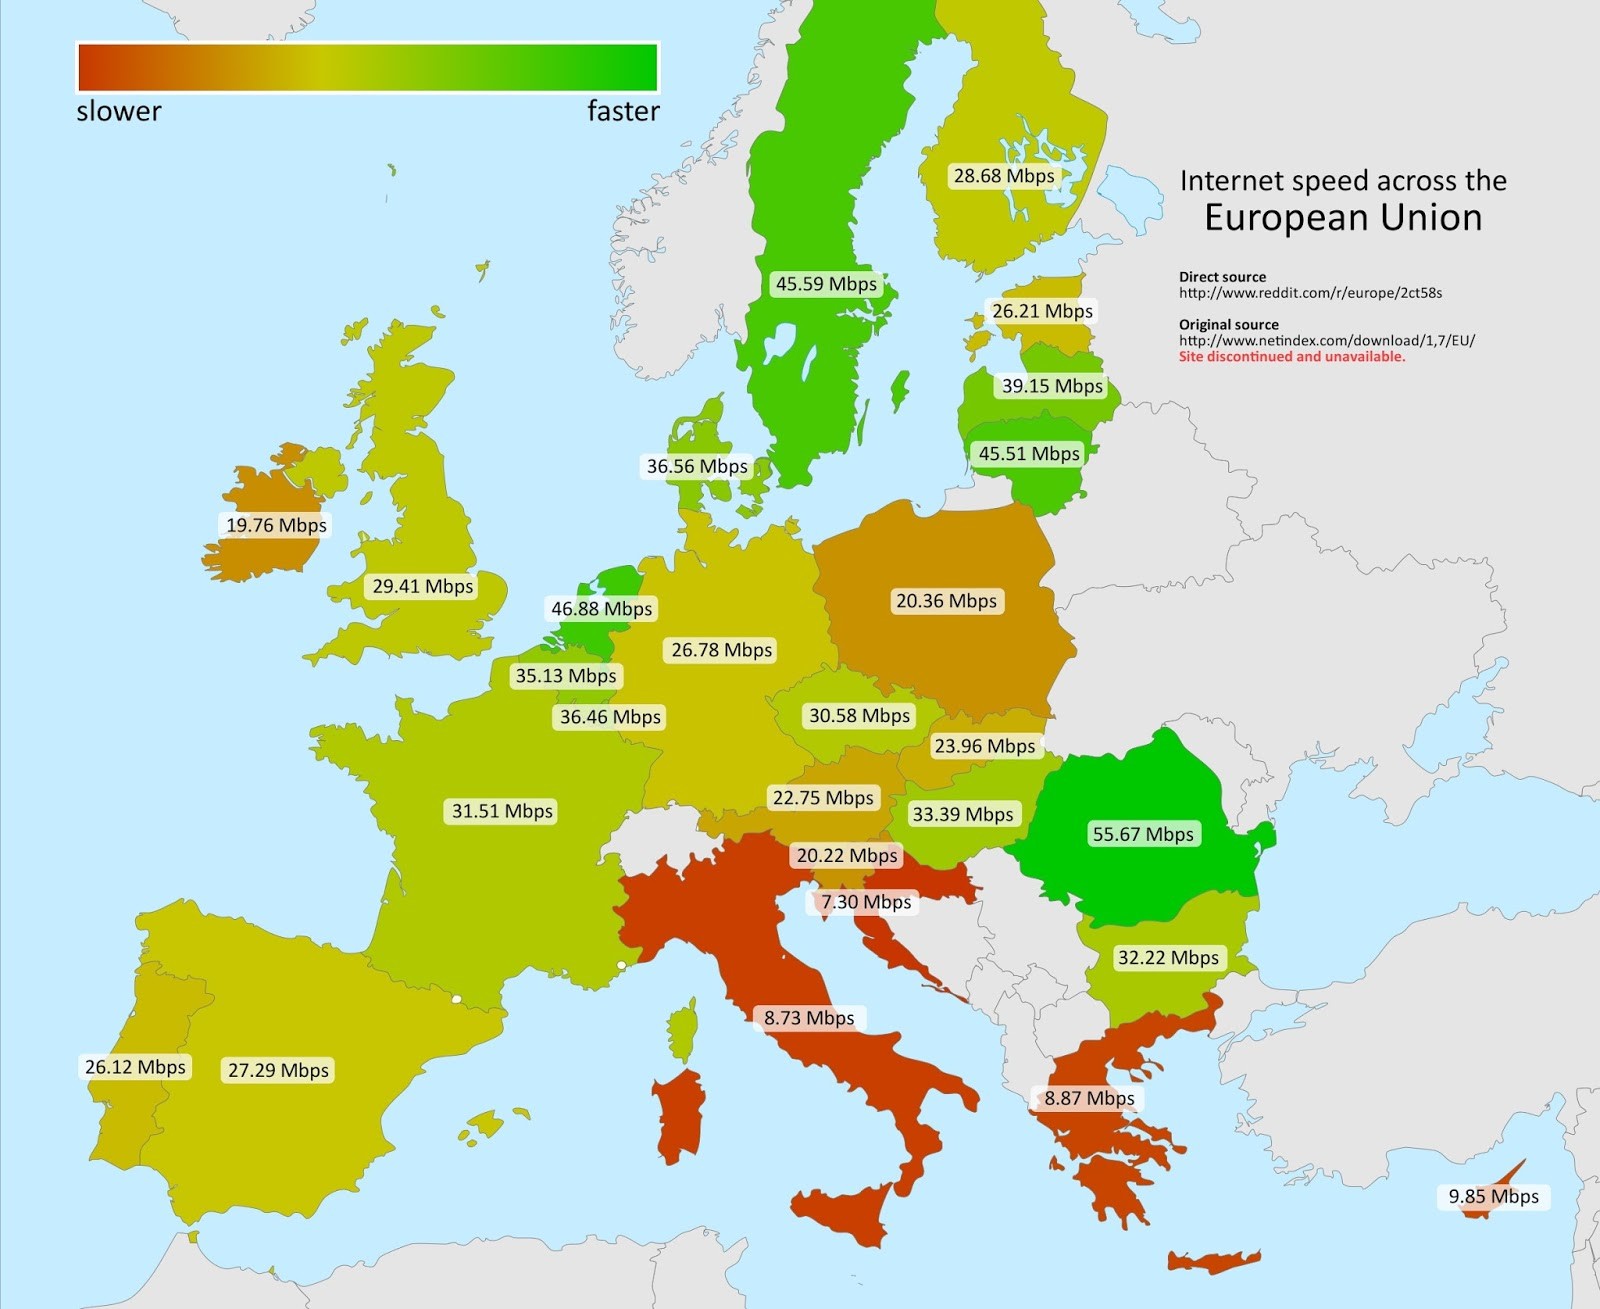 Internet speed across the European Union